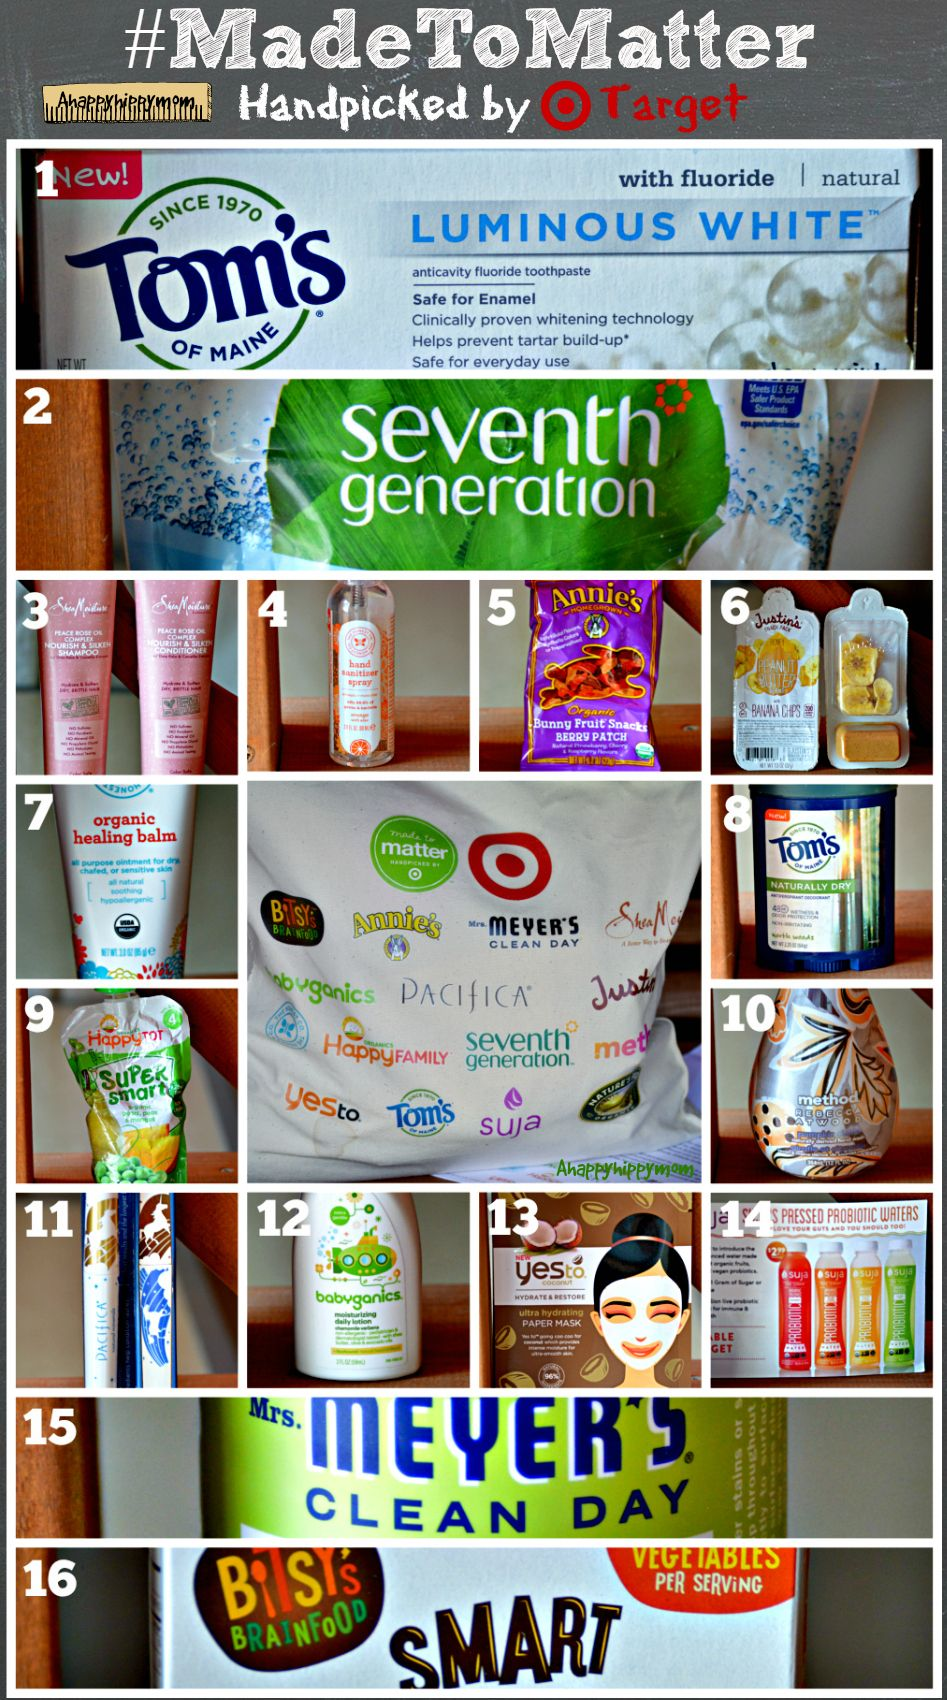 Collection of products handpicked from Target's Made to